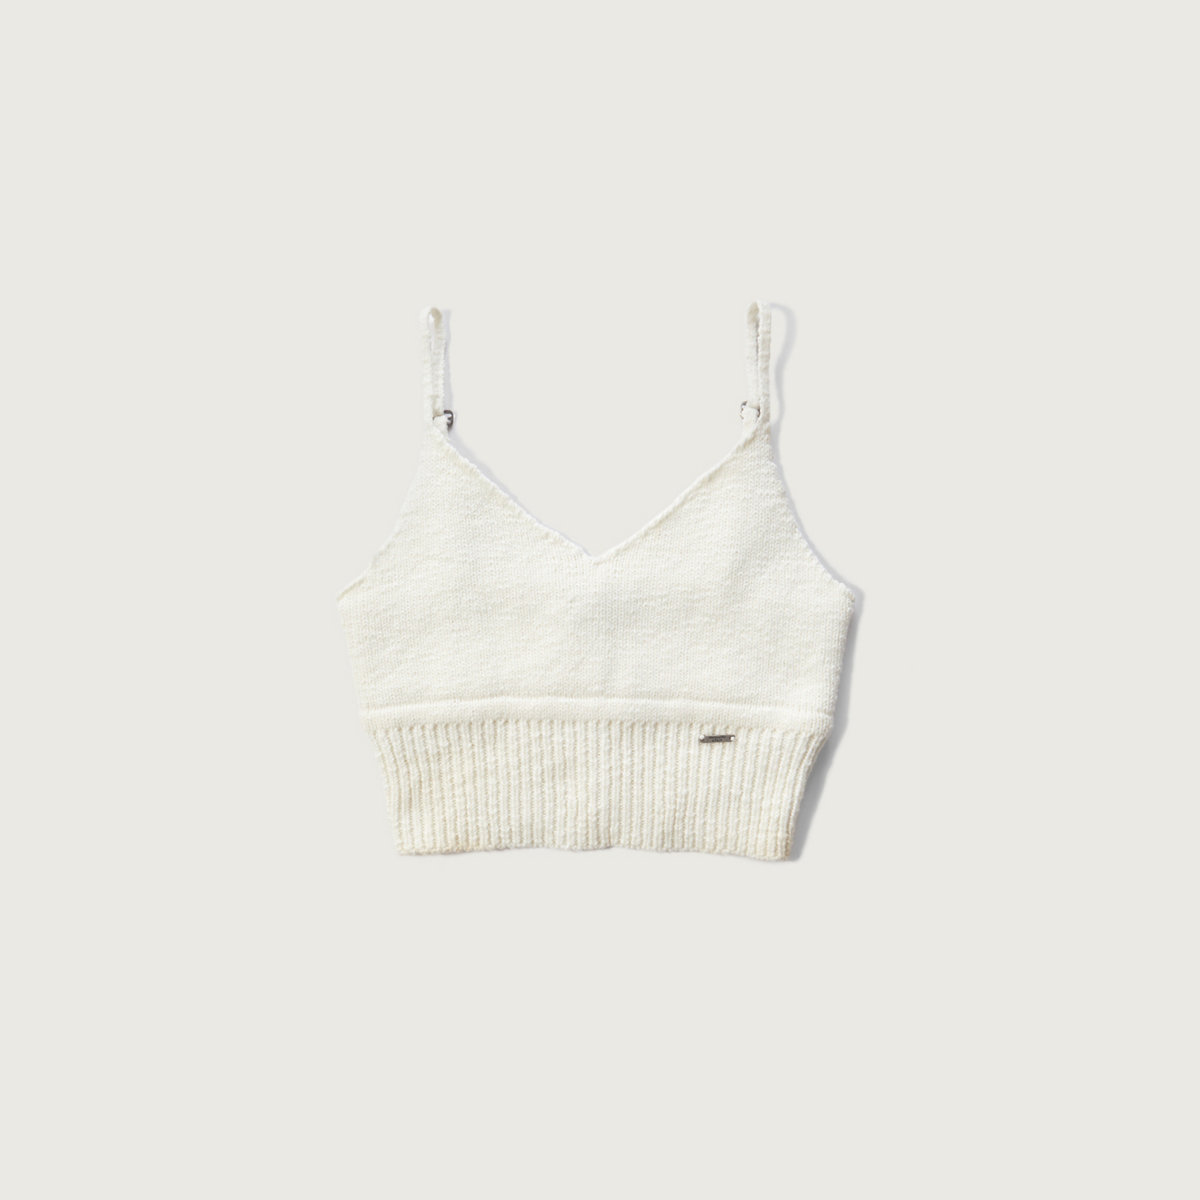 Knit Longline Bralette Top